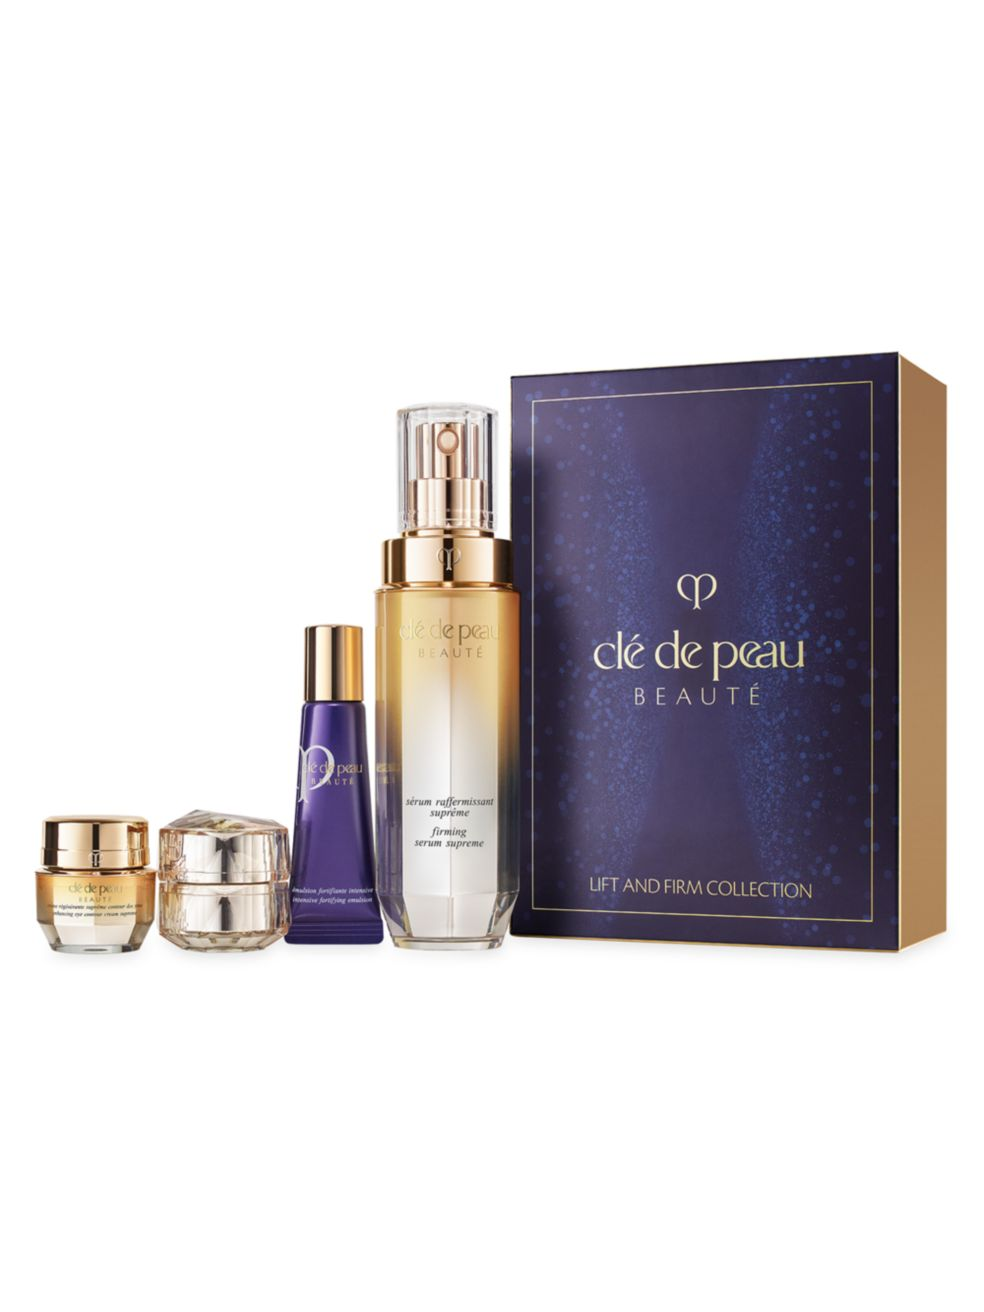 Clé de Peau Beauté Lift And Firm Collection 4-Piece Set